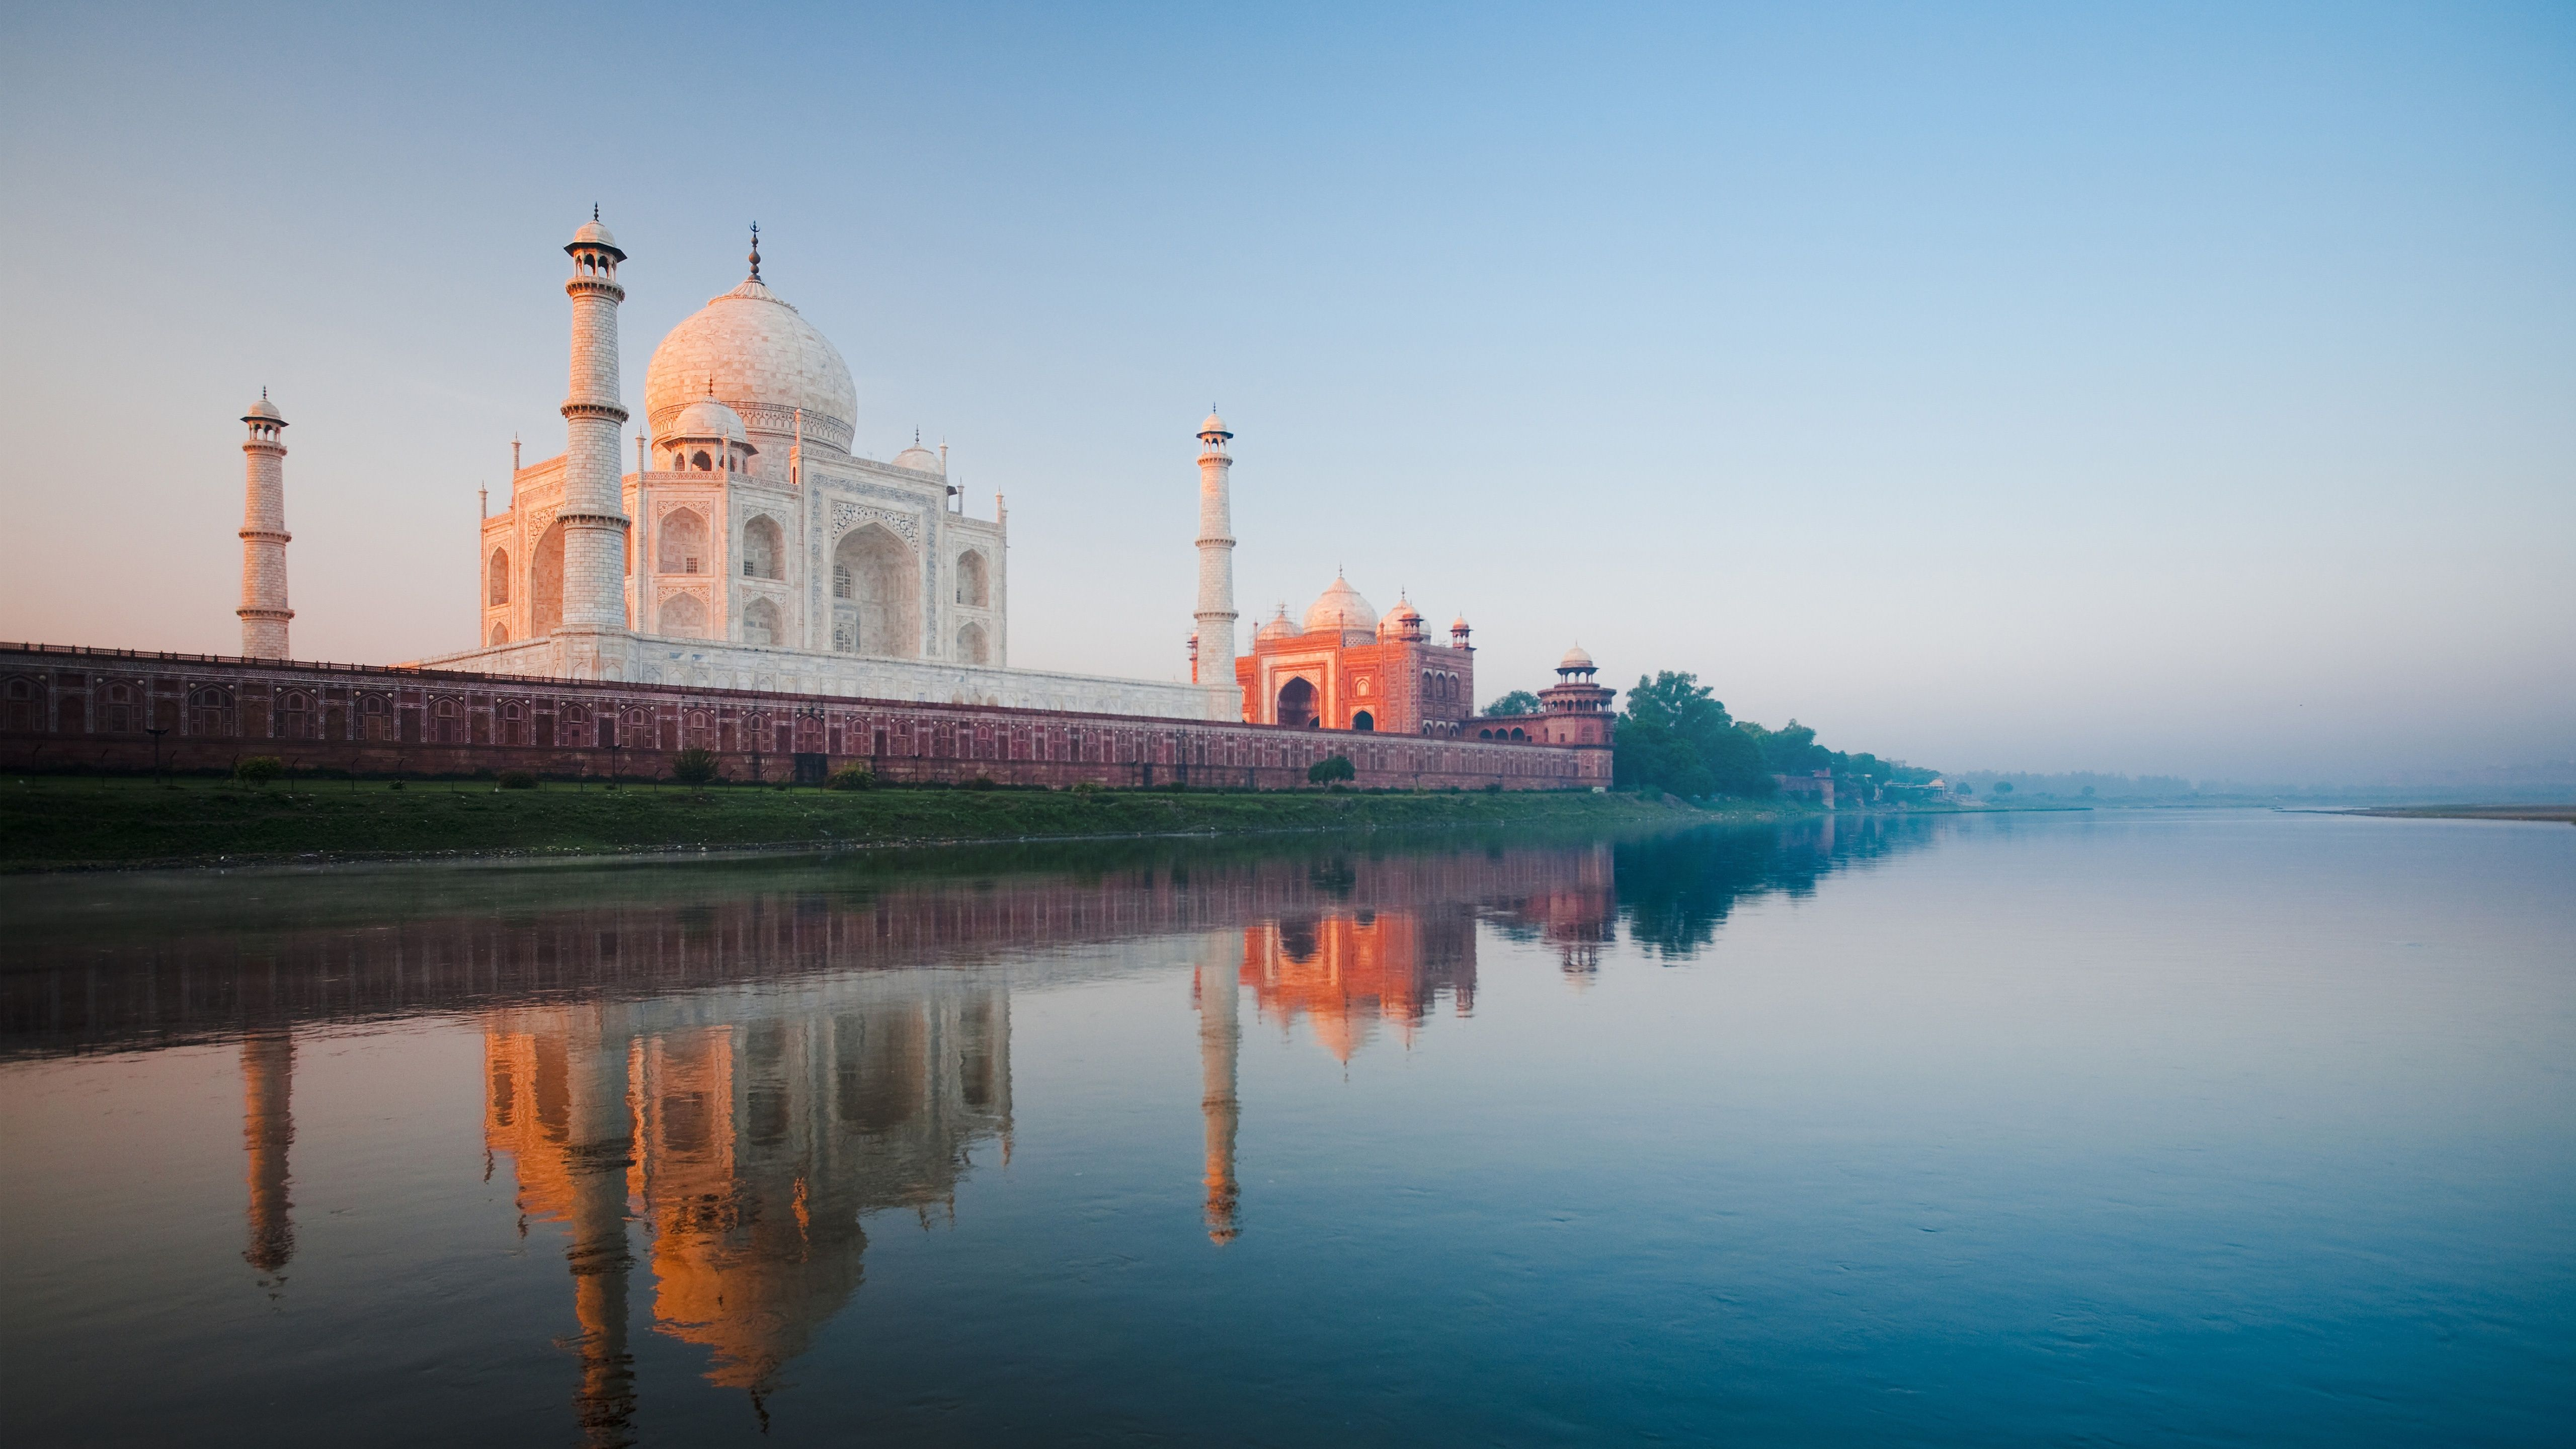 5k hd wallpapers top free 5k hd backgrounds - Taj mahal screensaver free download ...